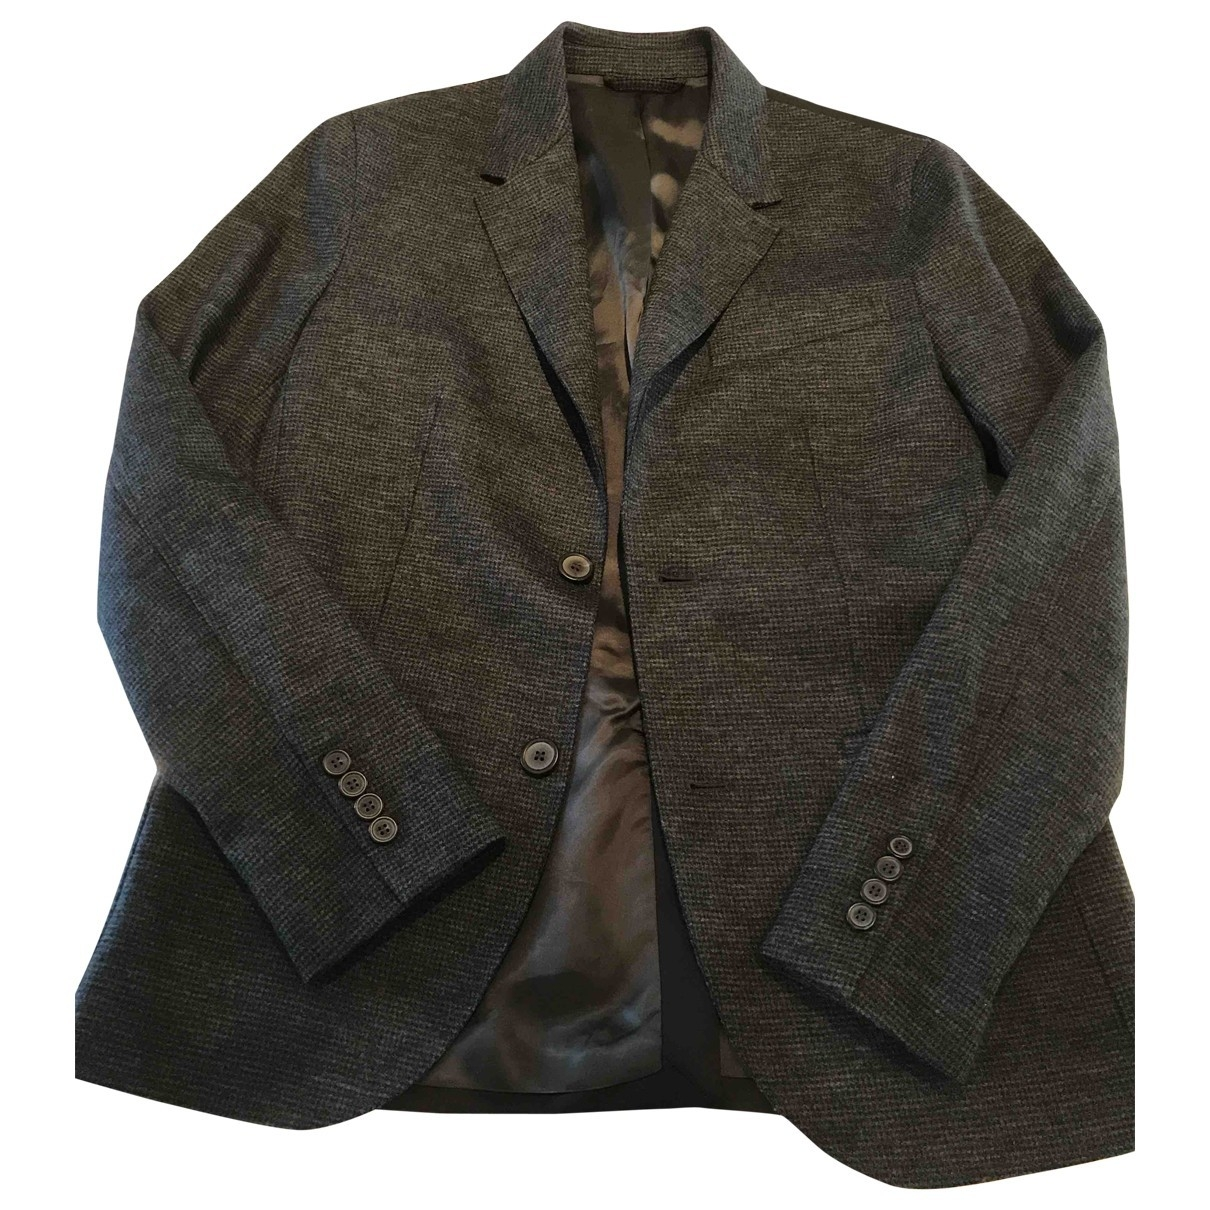 Lanvin \N Anthracite Wool jacket  for Men 48 IT